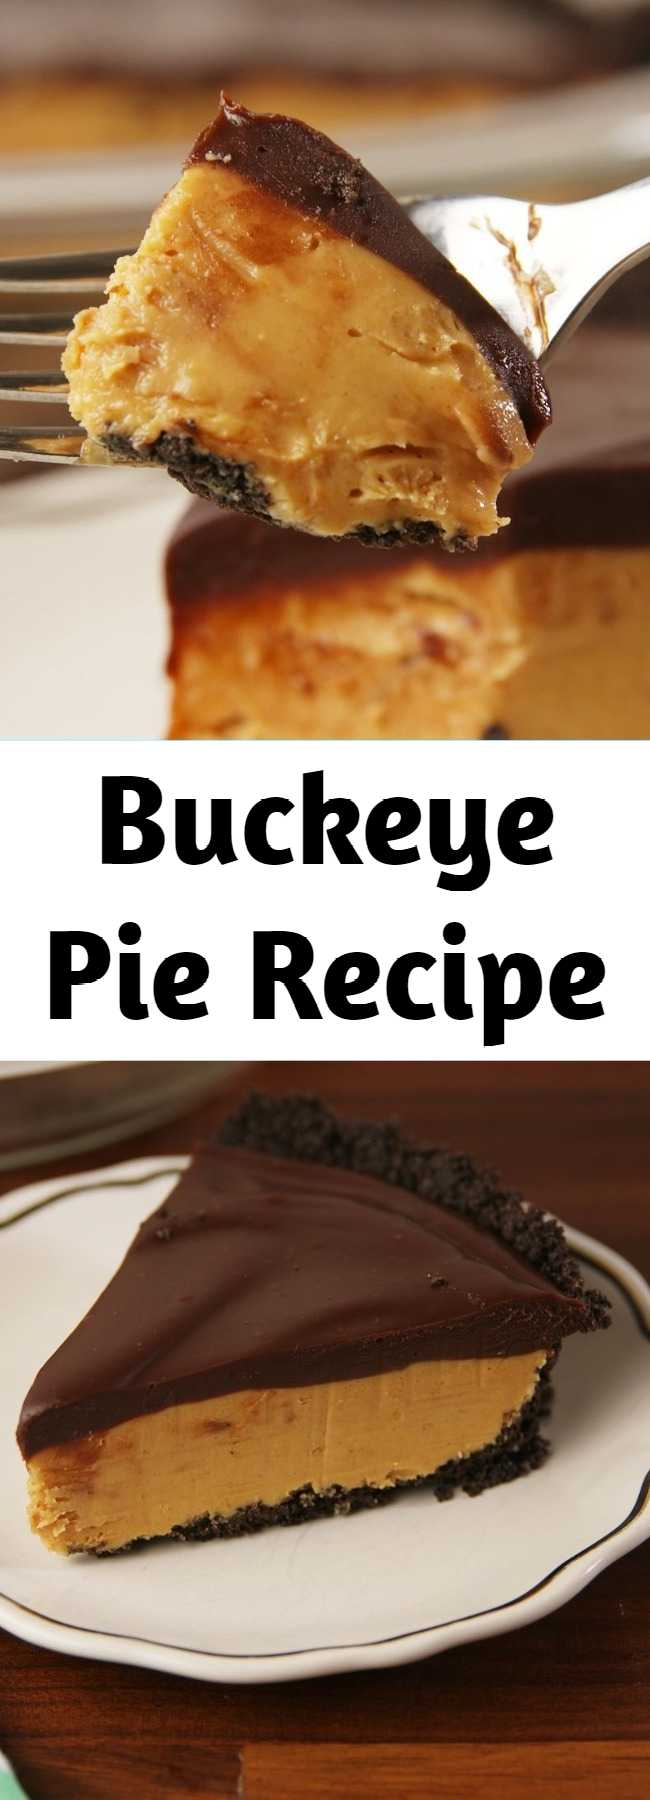 Buckeye Pie Recipe - Our love for buckeye everything knows no bounds, but this pie is our number one. It's rich enough for a holiday dessert, but also no bake, so you can make it all summer. #food #pastryporn #comfortfood #kids #easyrecipe #recipe #inspiration #ideas #diy #home